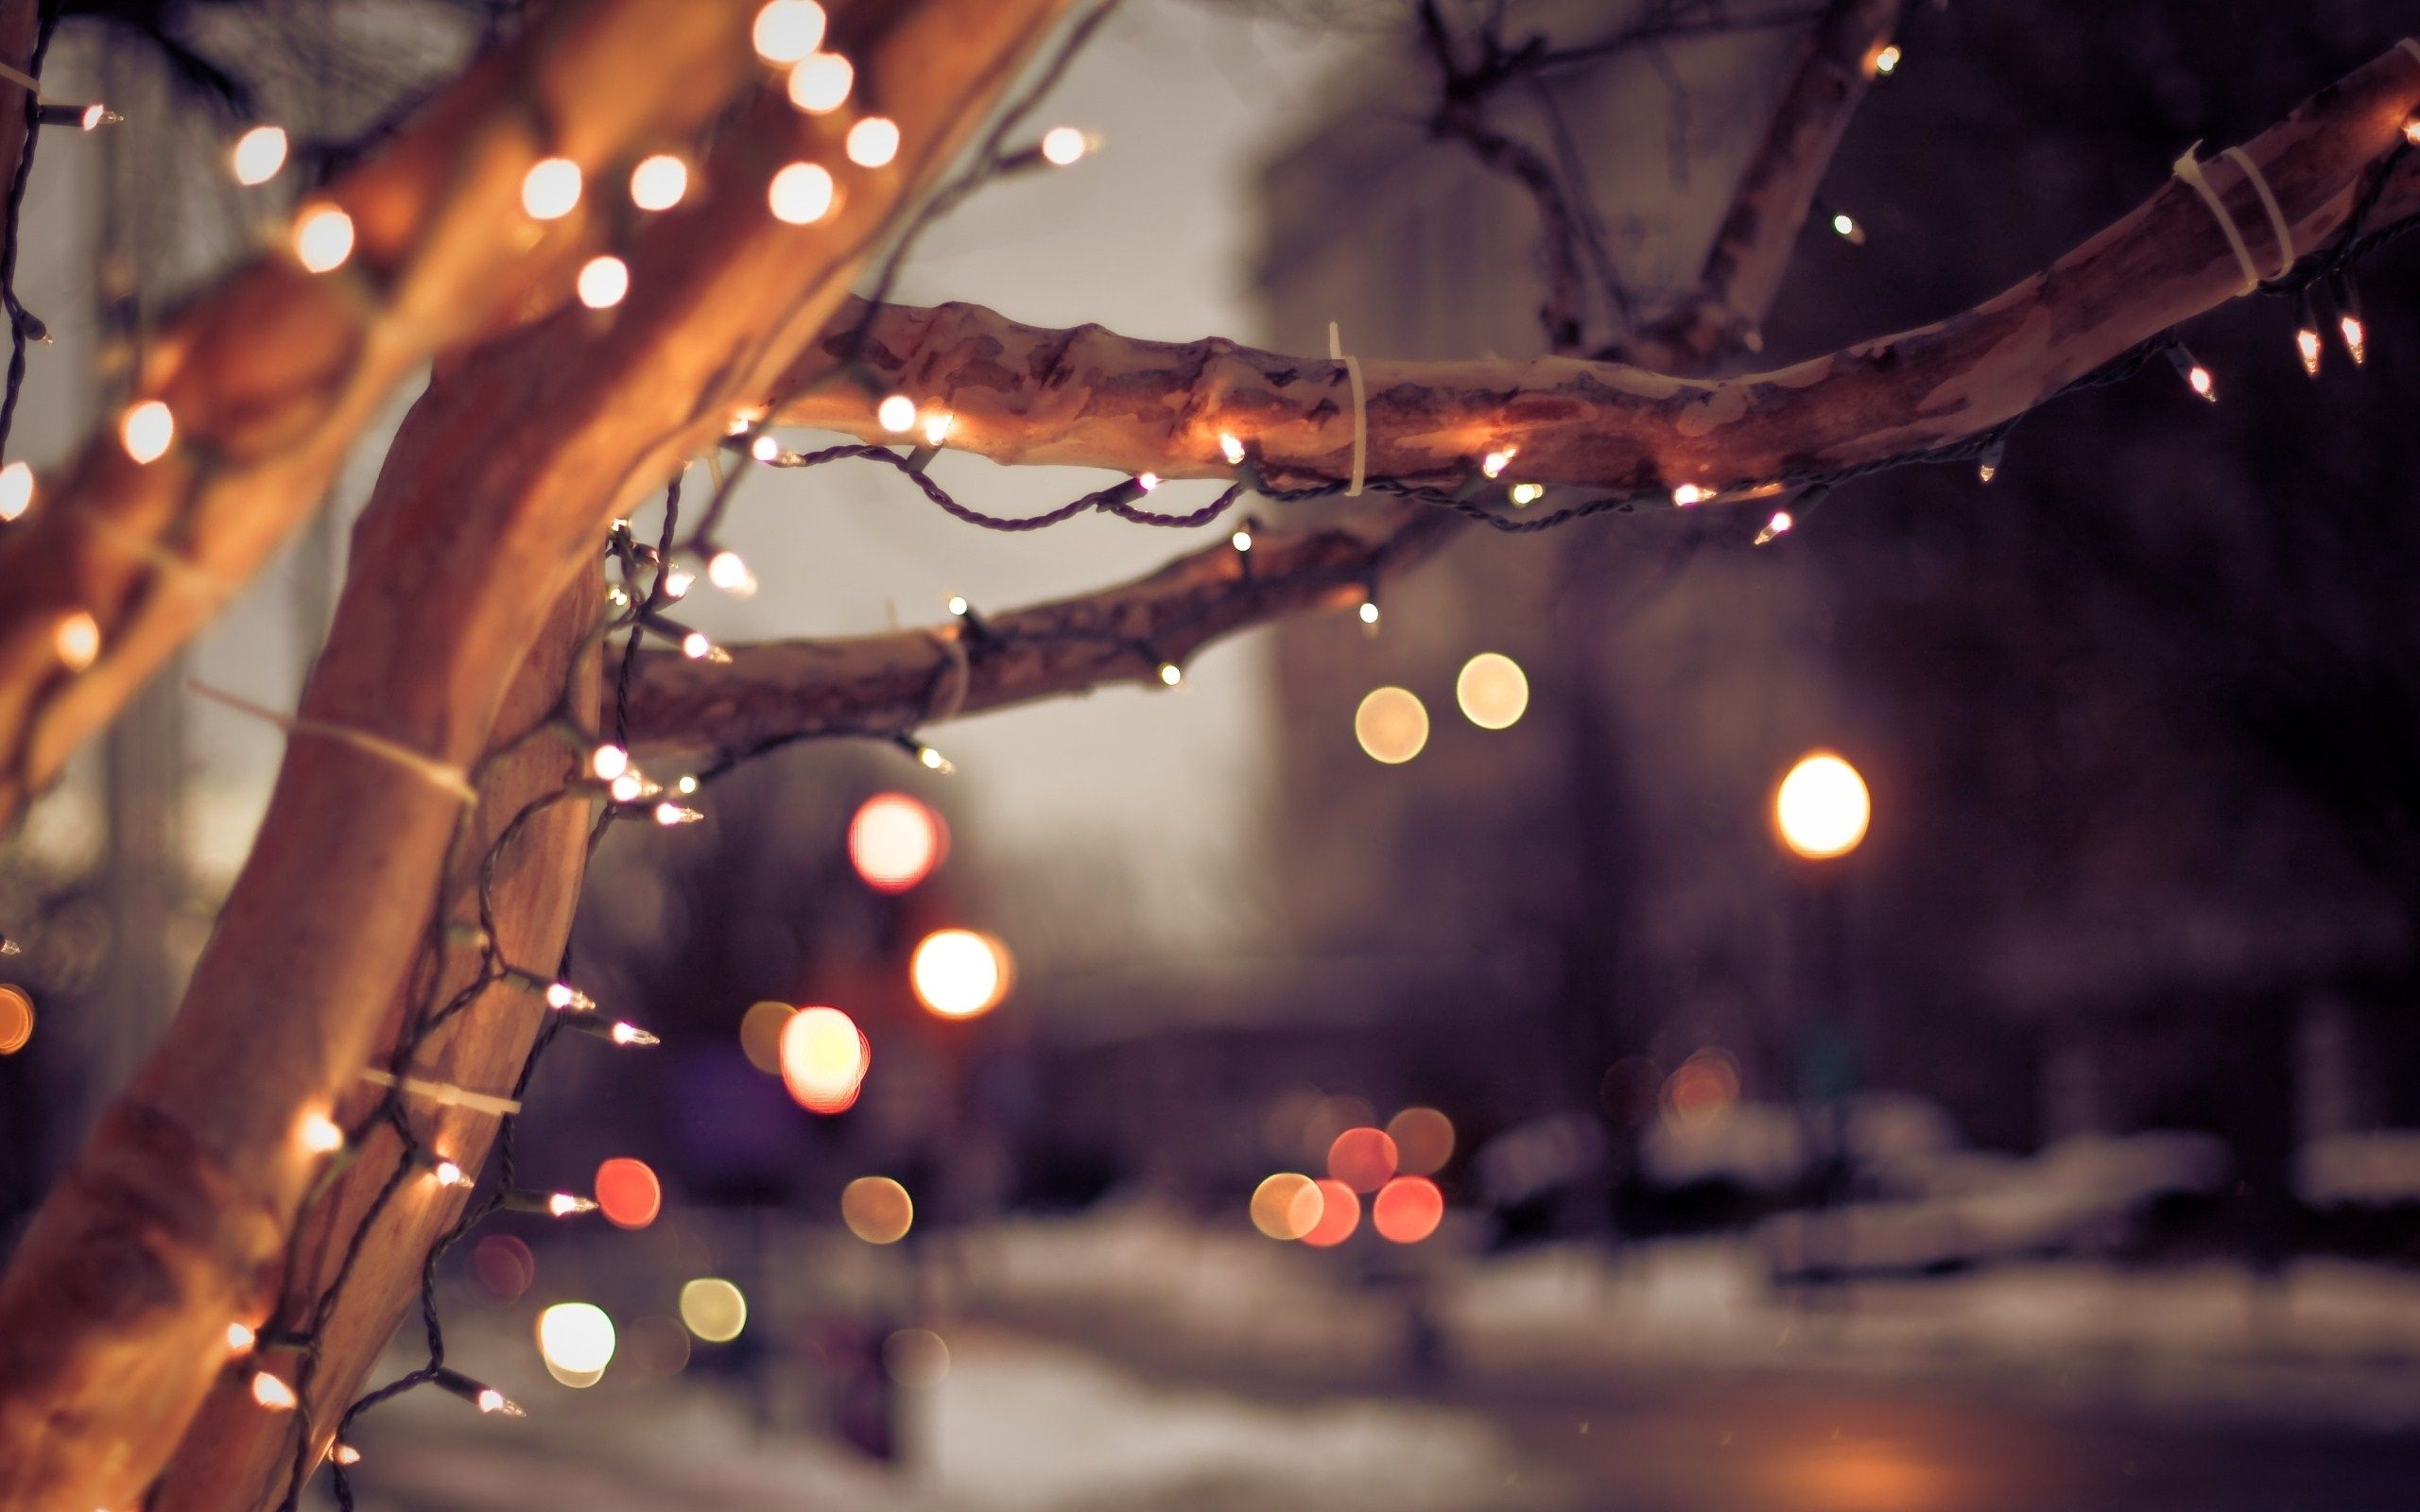 2560x1600 Free-Download-Christmas-Lights-Wallpaper-HD | wallpaper.wiki